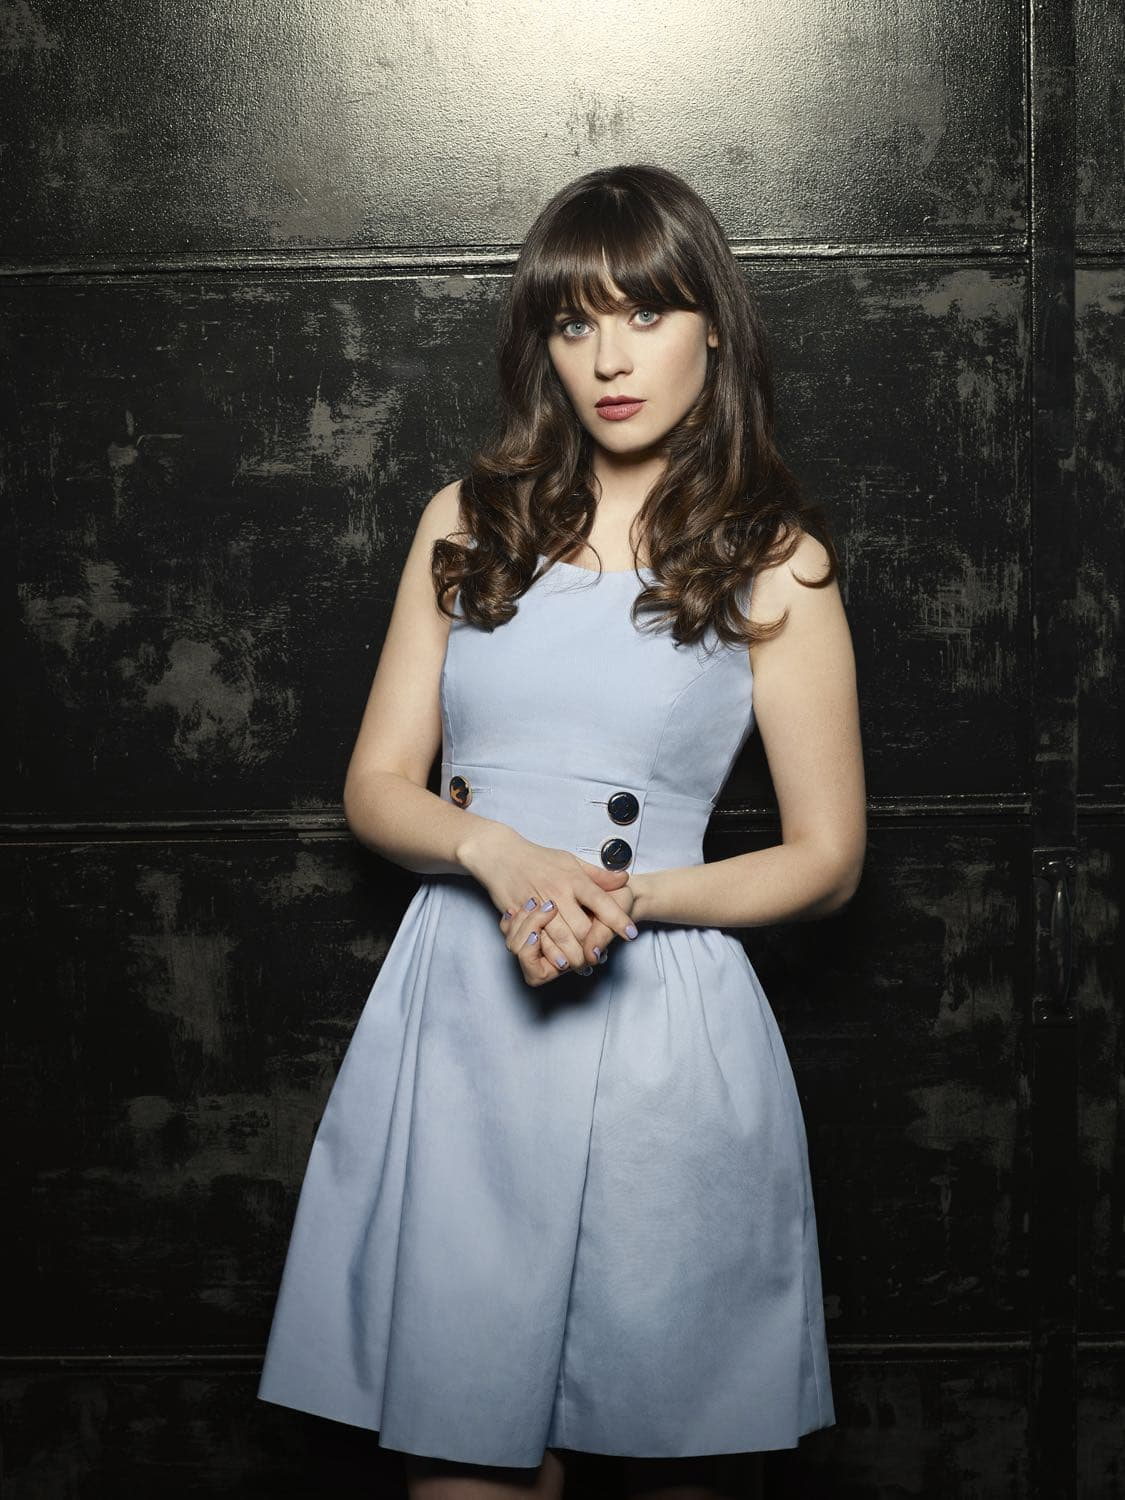 NEW GIRL: Zooey Deschanel returns as Jess. NEW GIRL premieres Tuesday, Sept. 20 (8:30-9:00 PM ET/PT) on FOX.